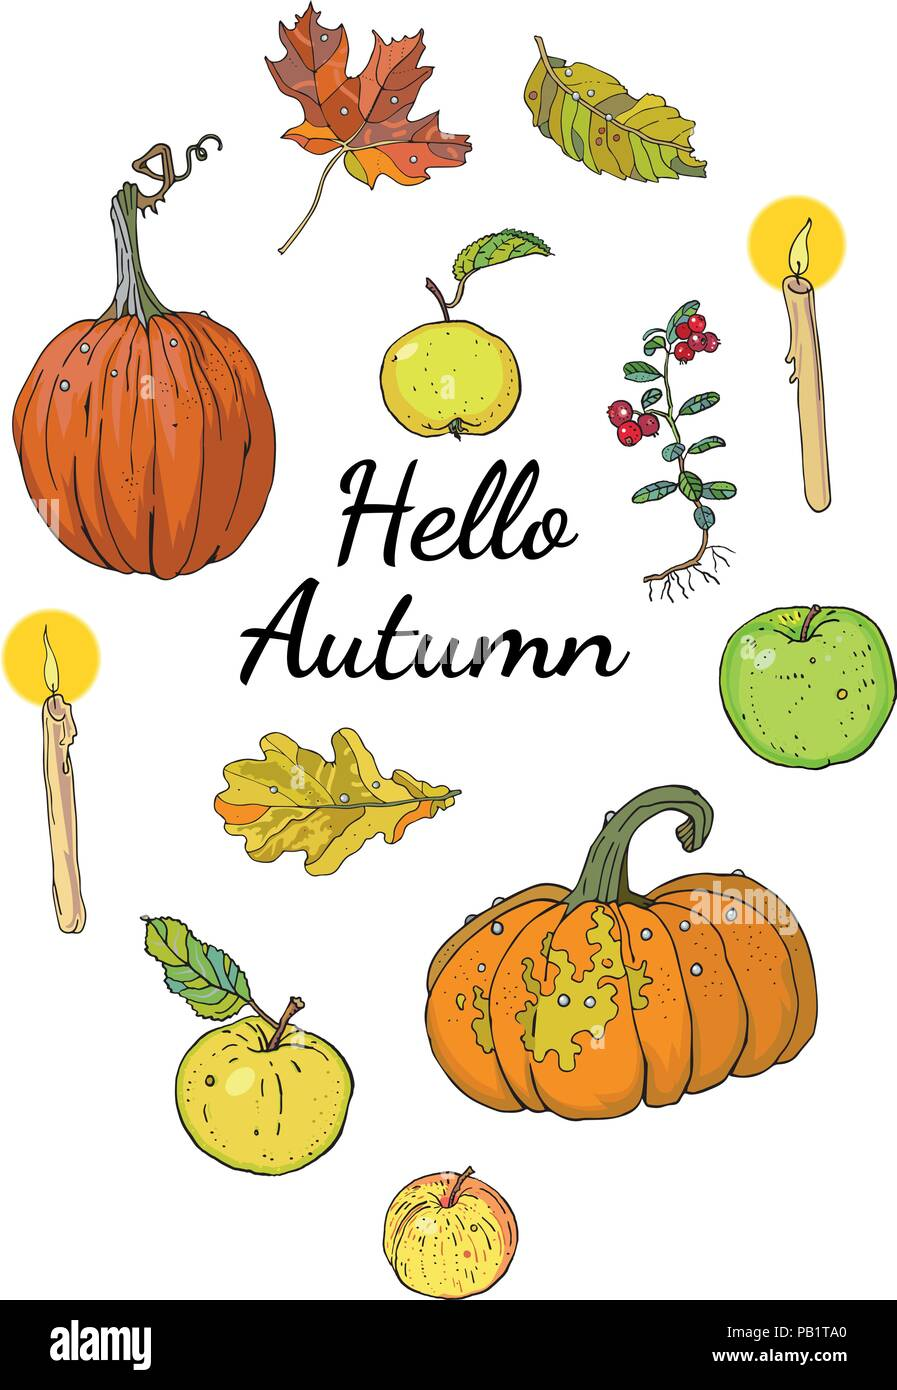 Hello autumn set, isolated objects with inscription: pumpkins, apples, oak and maple falling leaves, lingonberry, candles. Hand drawn vector illustration. Harvest season. Festive decoration. - Stock Vector